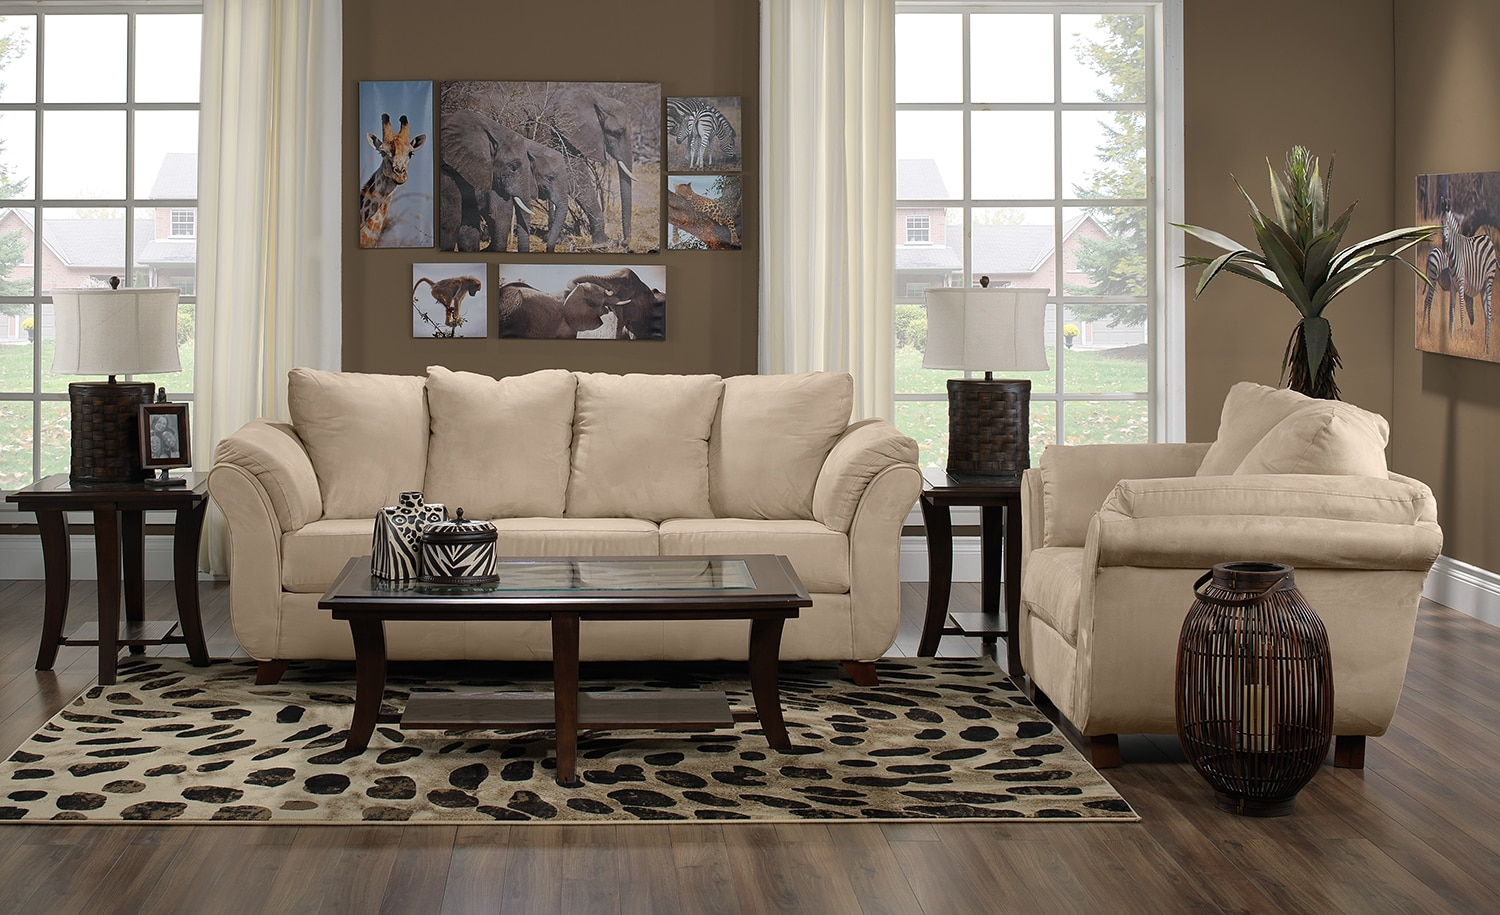 Leon s living room chairs gallery